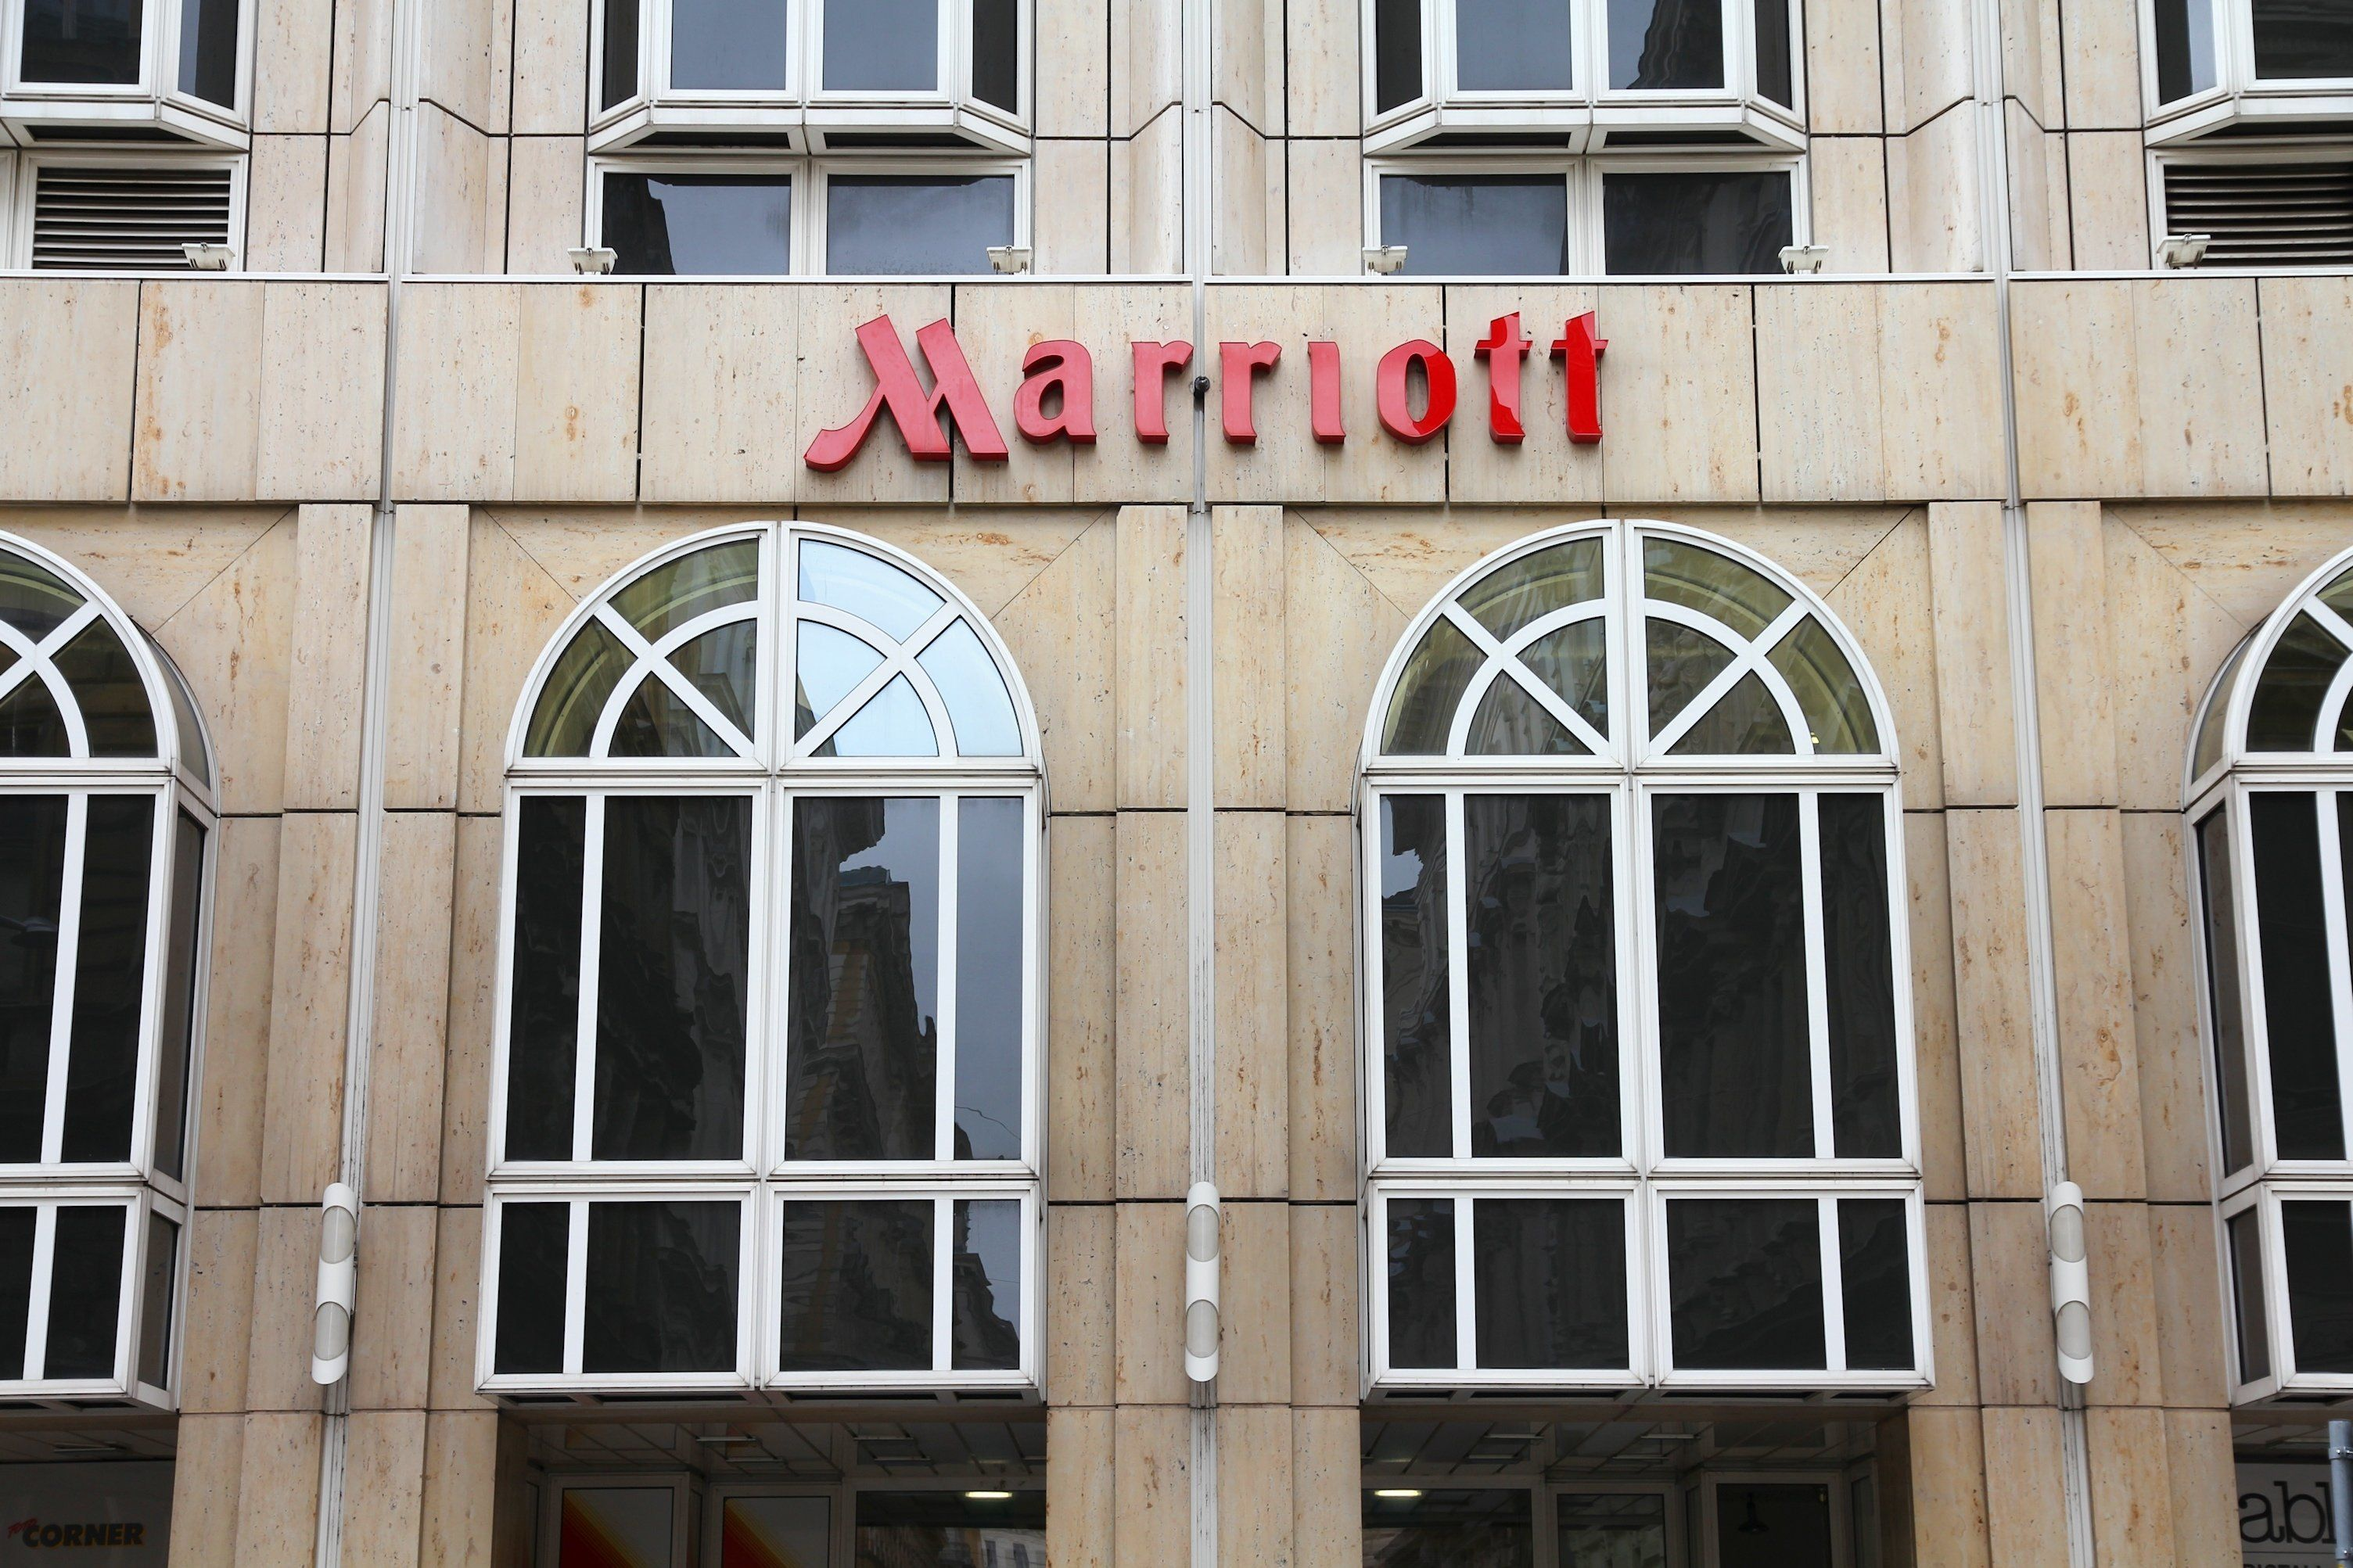 Marriott hotel in Vienna. Marriott International has 3,800 properties in 74 countries and had 12.31 billion USD revenue in 2011.